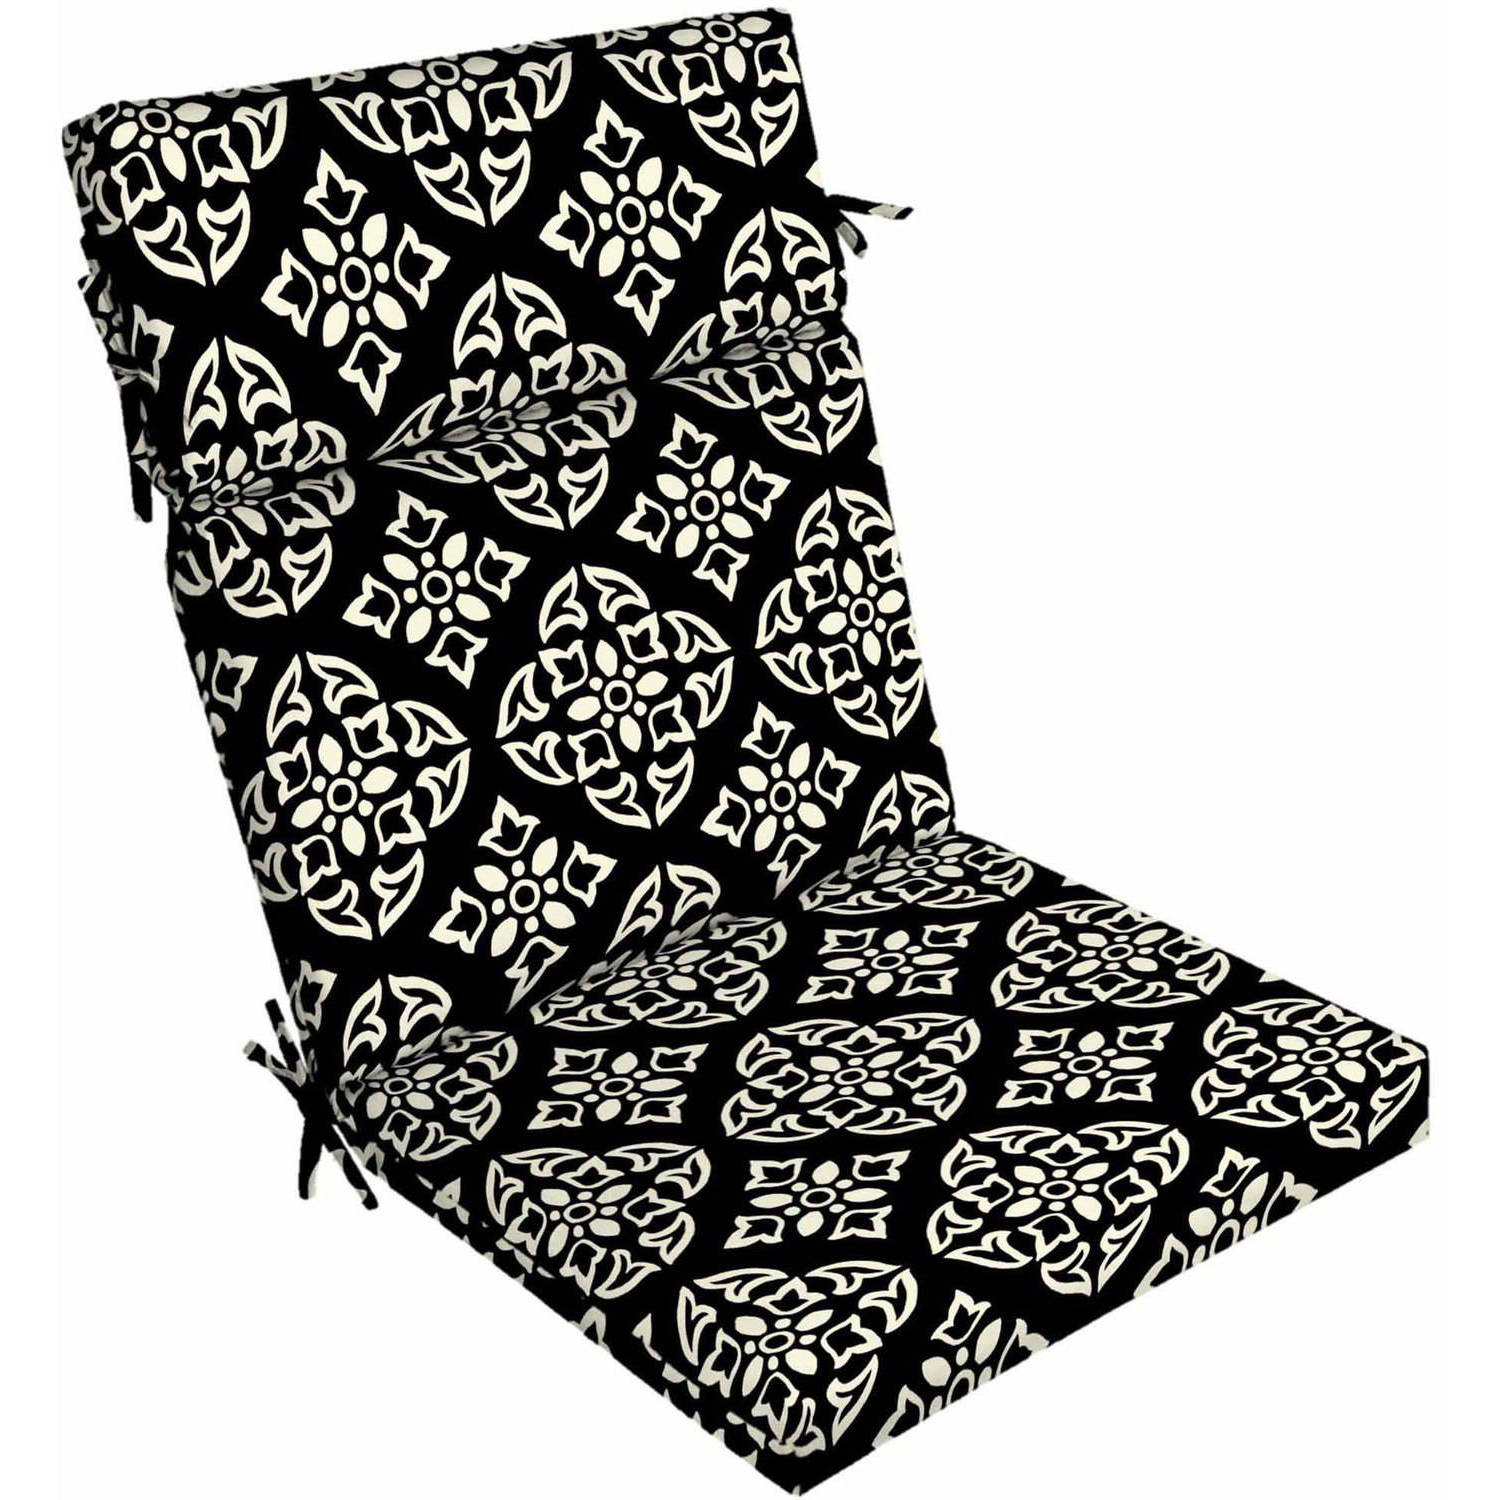 Better Homes and Gardens Outdoor Patio Dining Chair Cushion, Multiple Patterns by Arden Companies